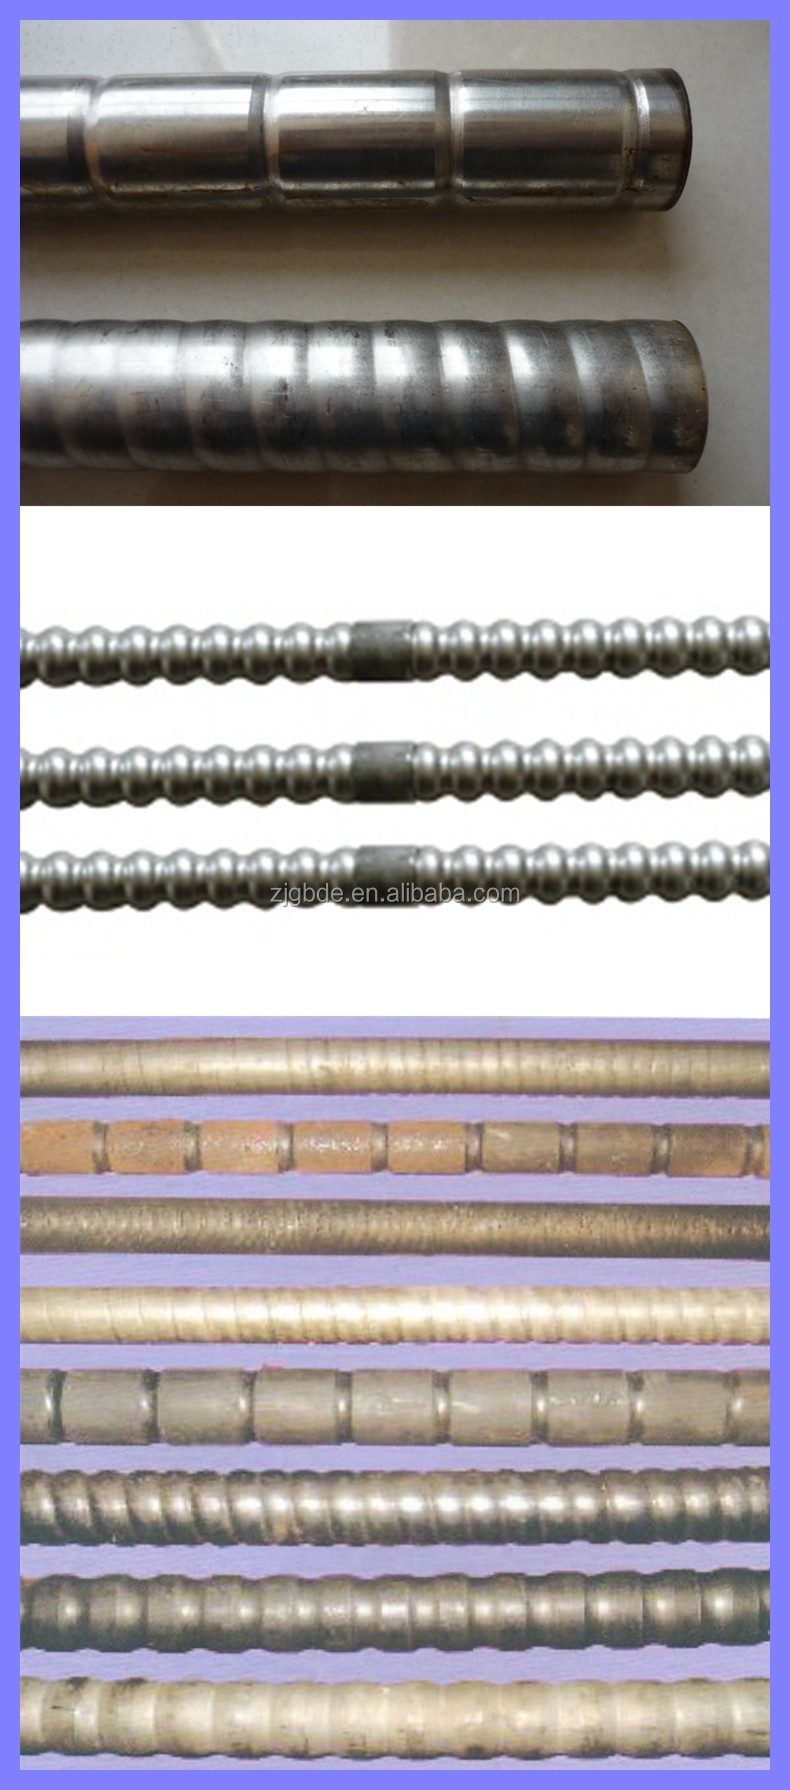 Extruded single metal corrugated tube in heat exchanger